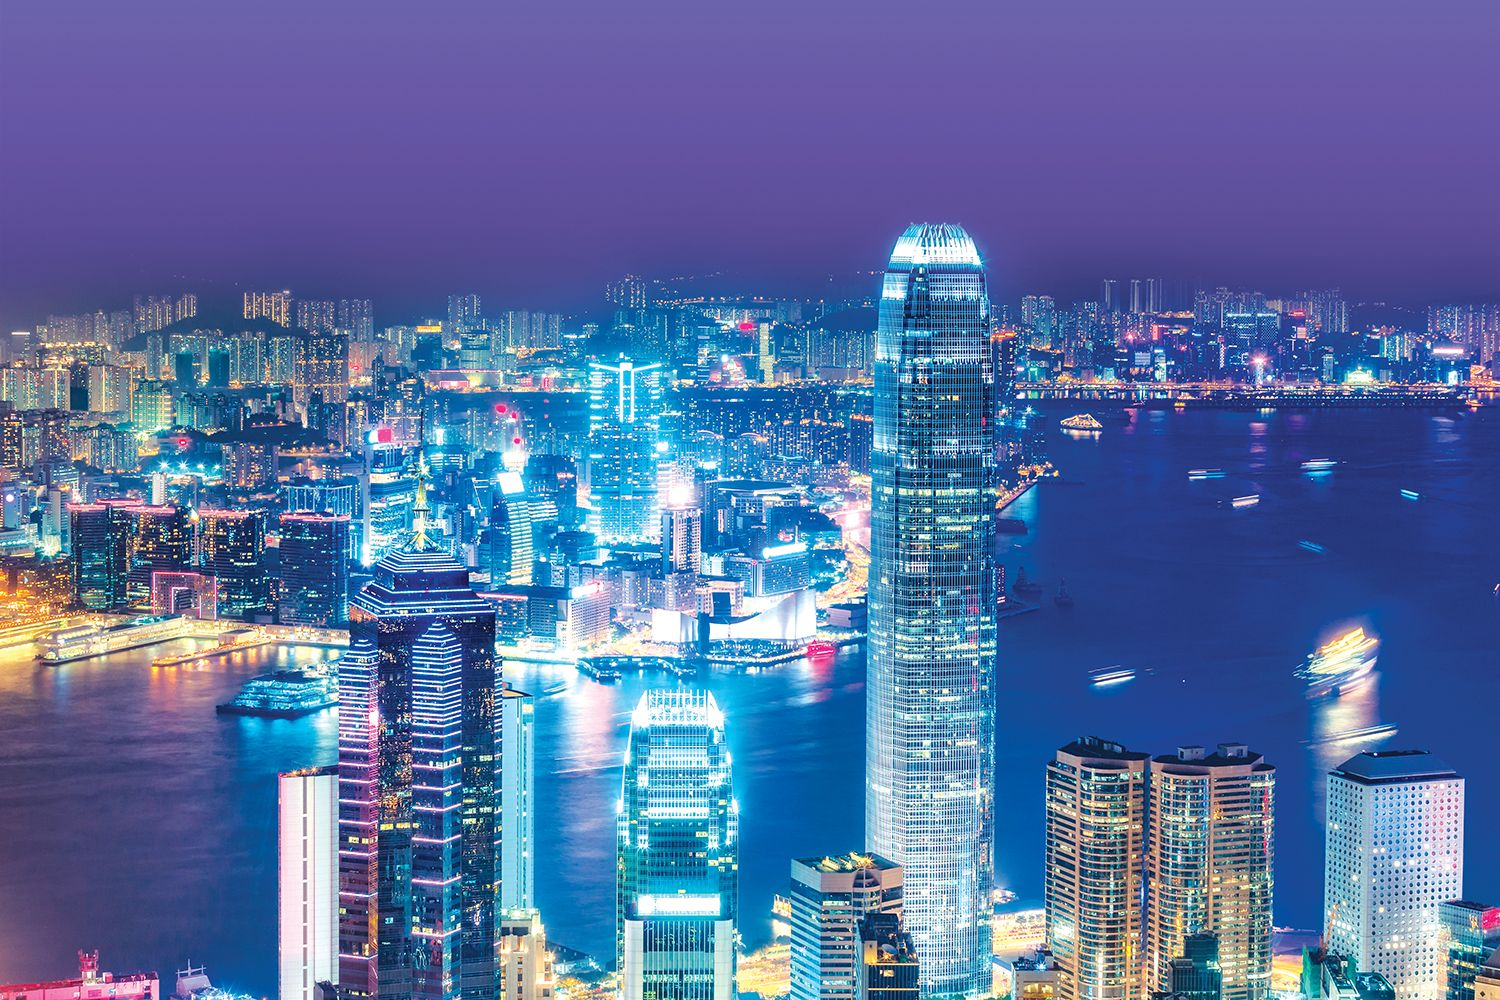 KPMG / ACCA Thought Leadership – Looking beyond Business Disruption: Hong Kong's technology-driven future